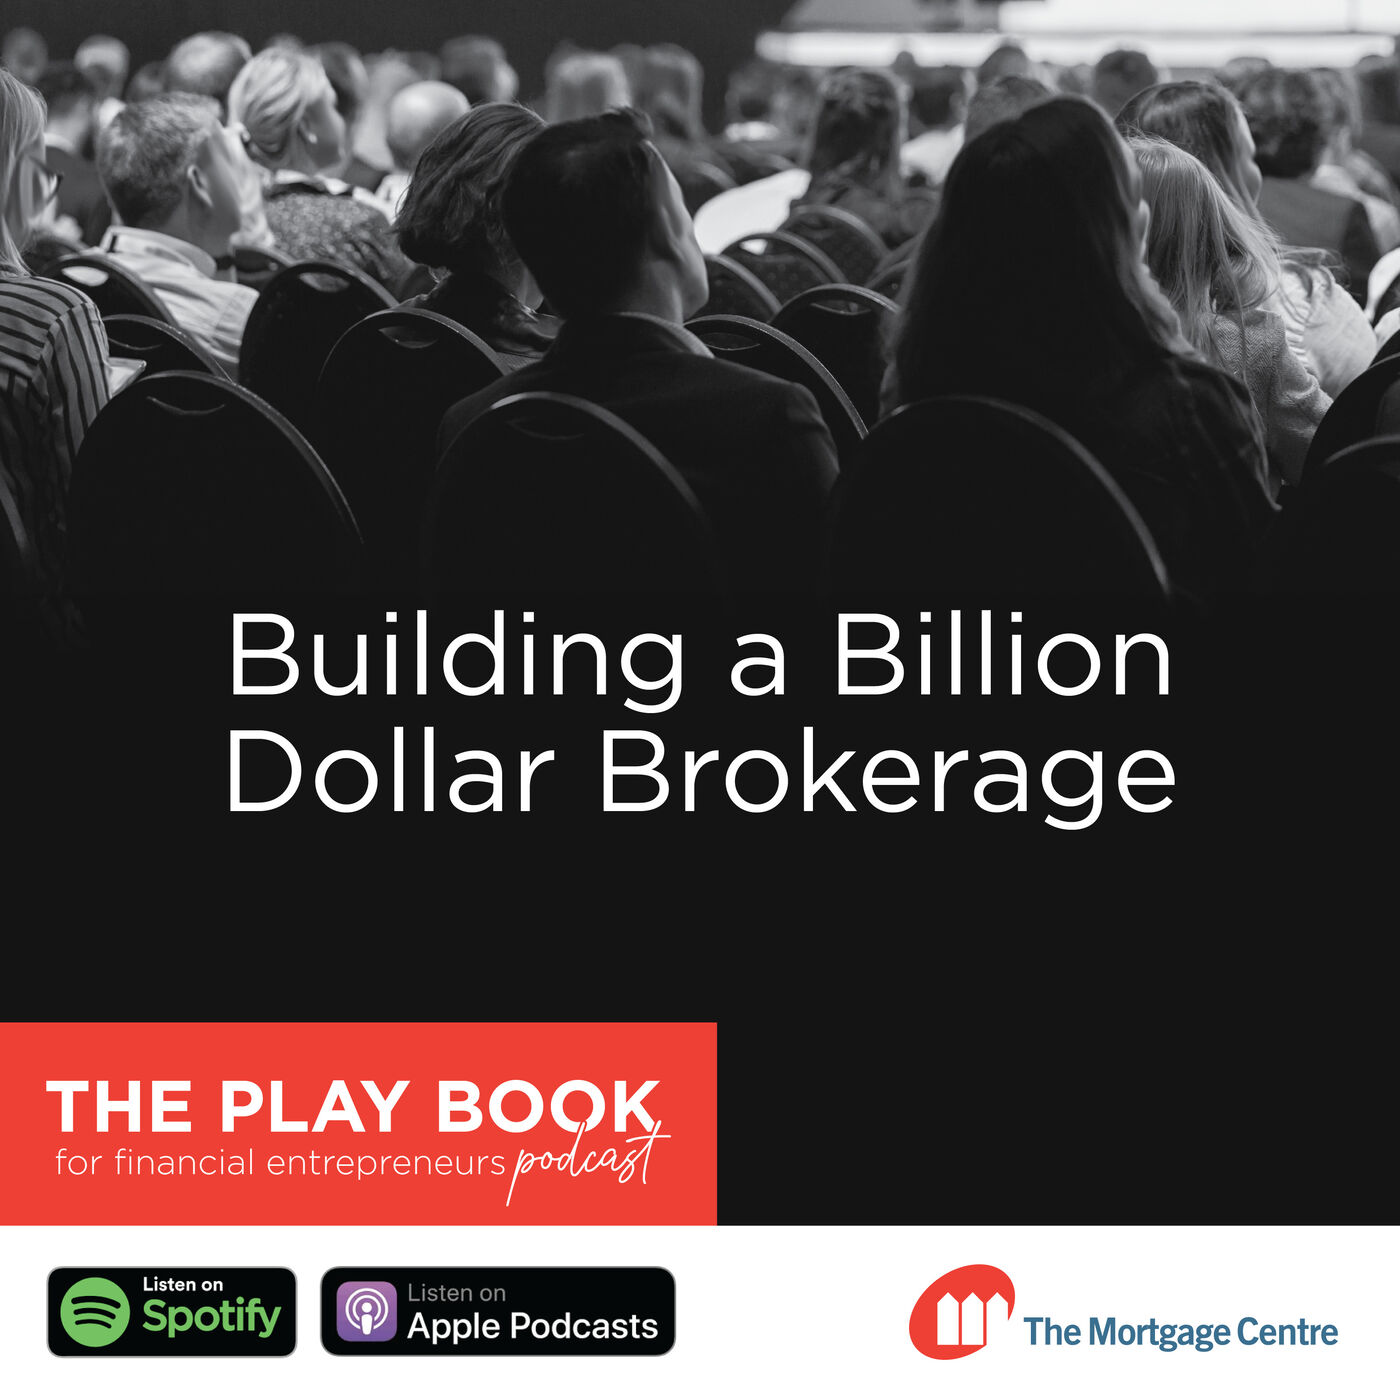 Building a Billion Dollar Brokerage